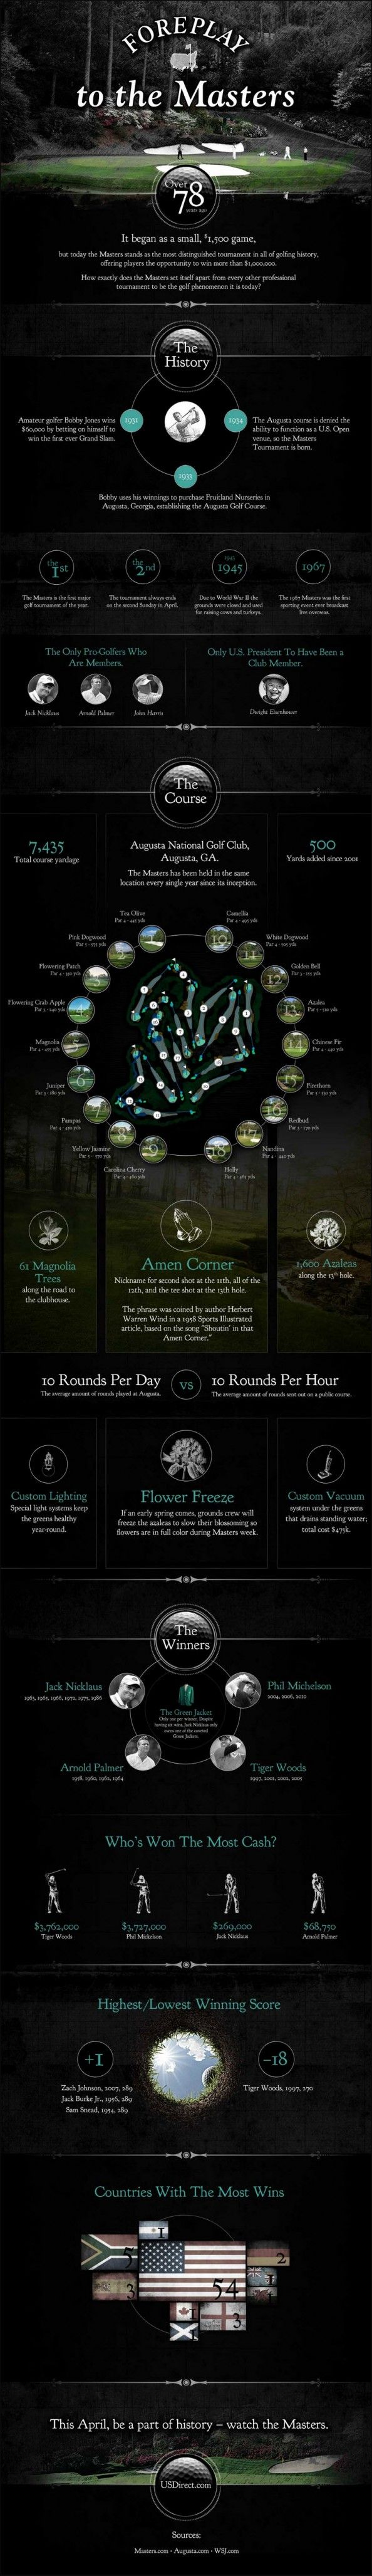 78 Years of Masters Tournament History